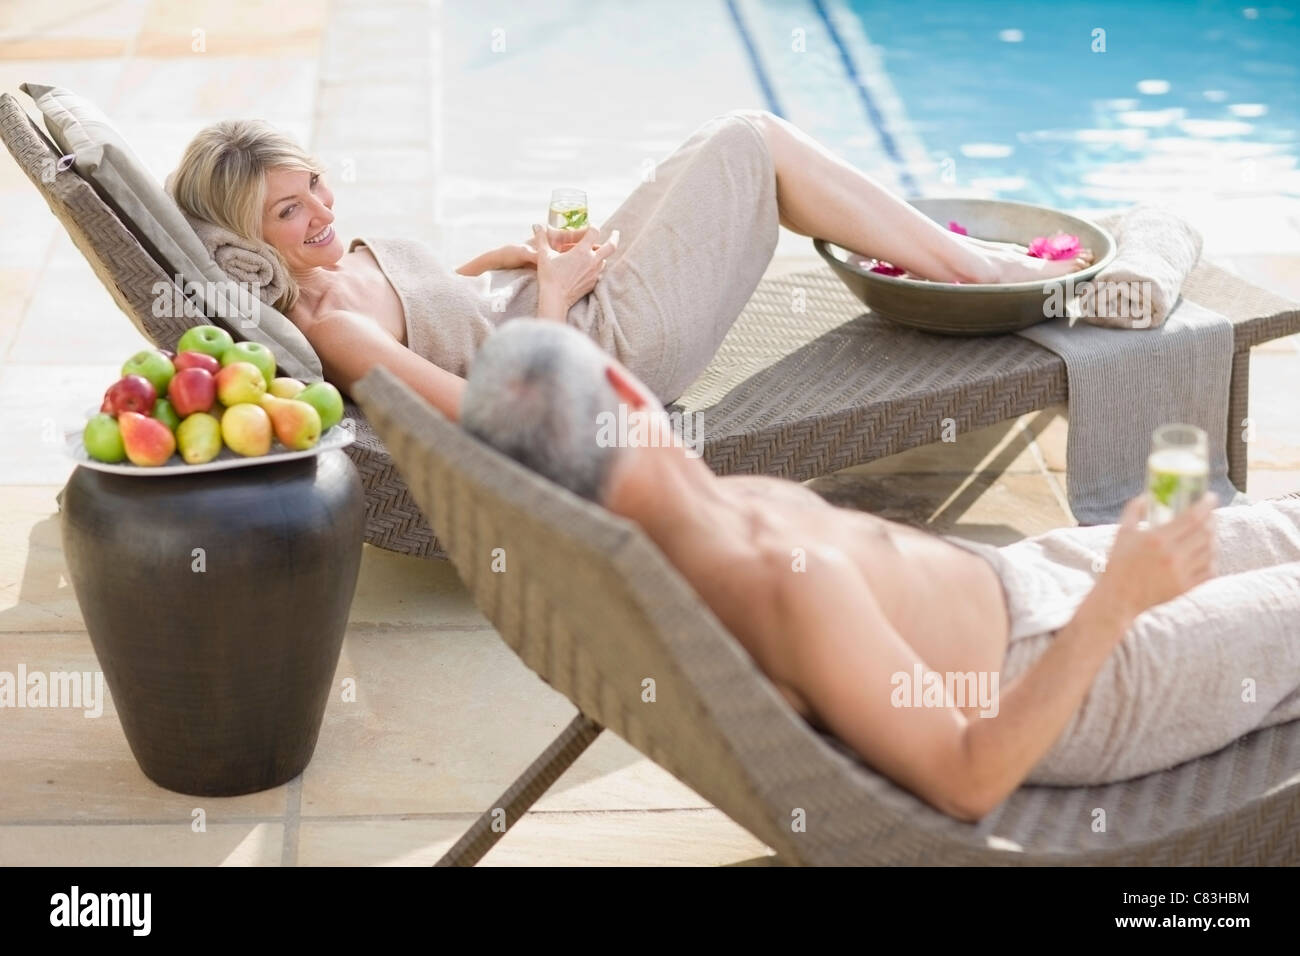 Couple relaxing in lawn chairs by pool Stock Photo